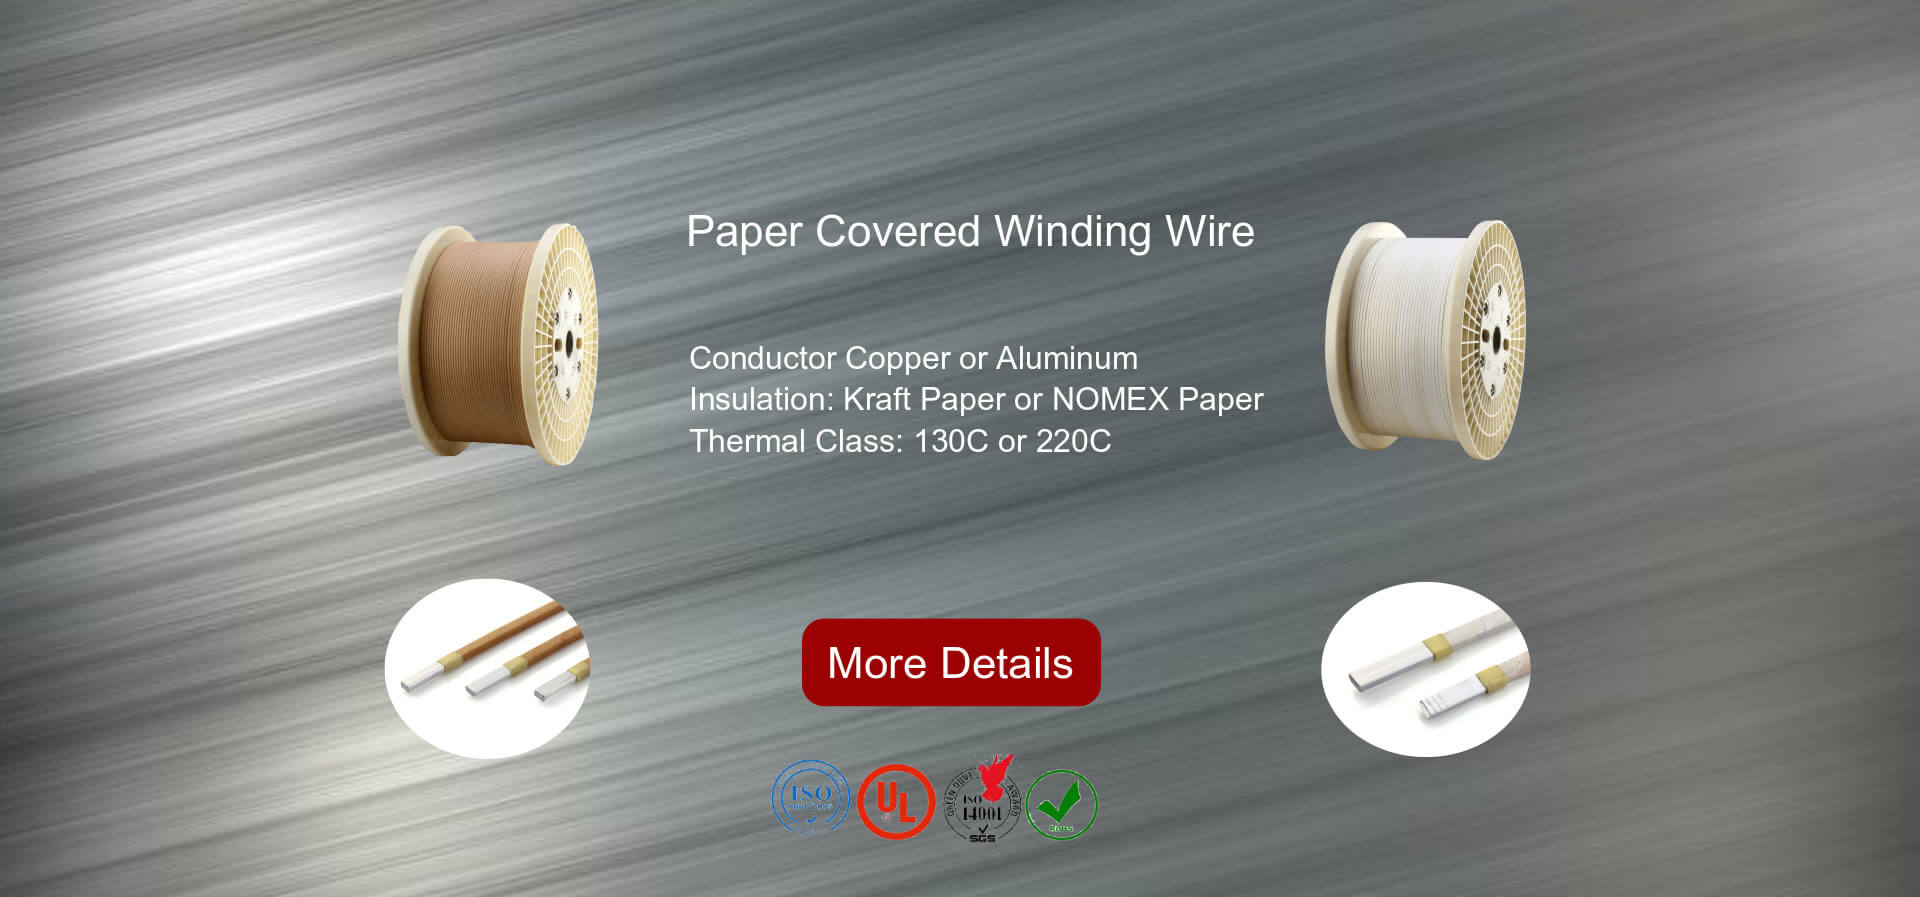 Enamelled Wire, Magnet Wire, Insulated Wire, Flat Wire Factory